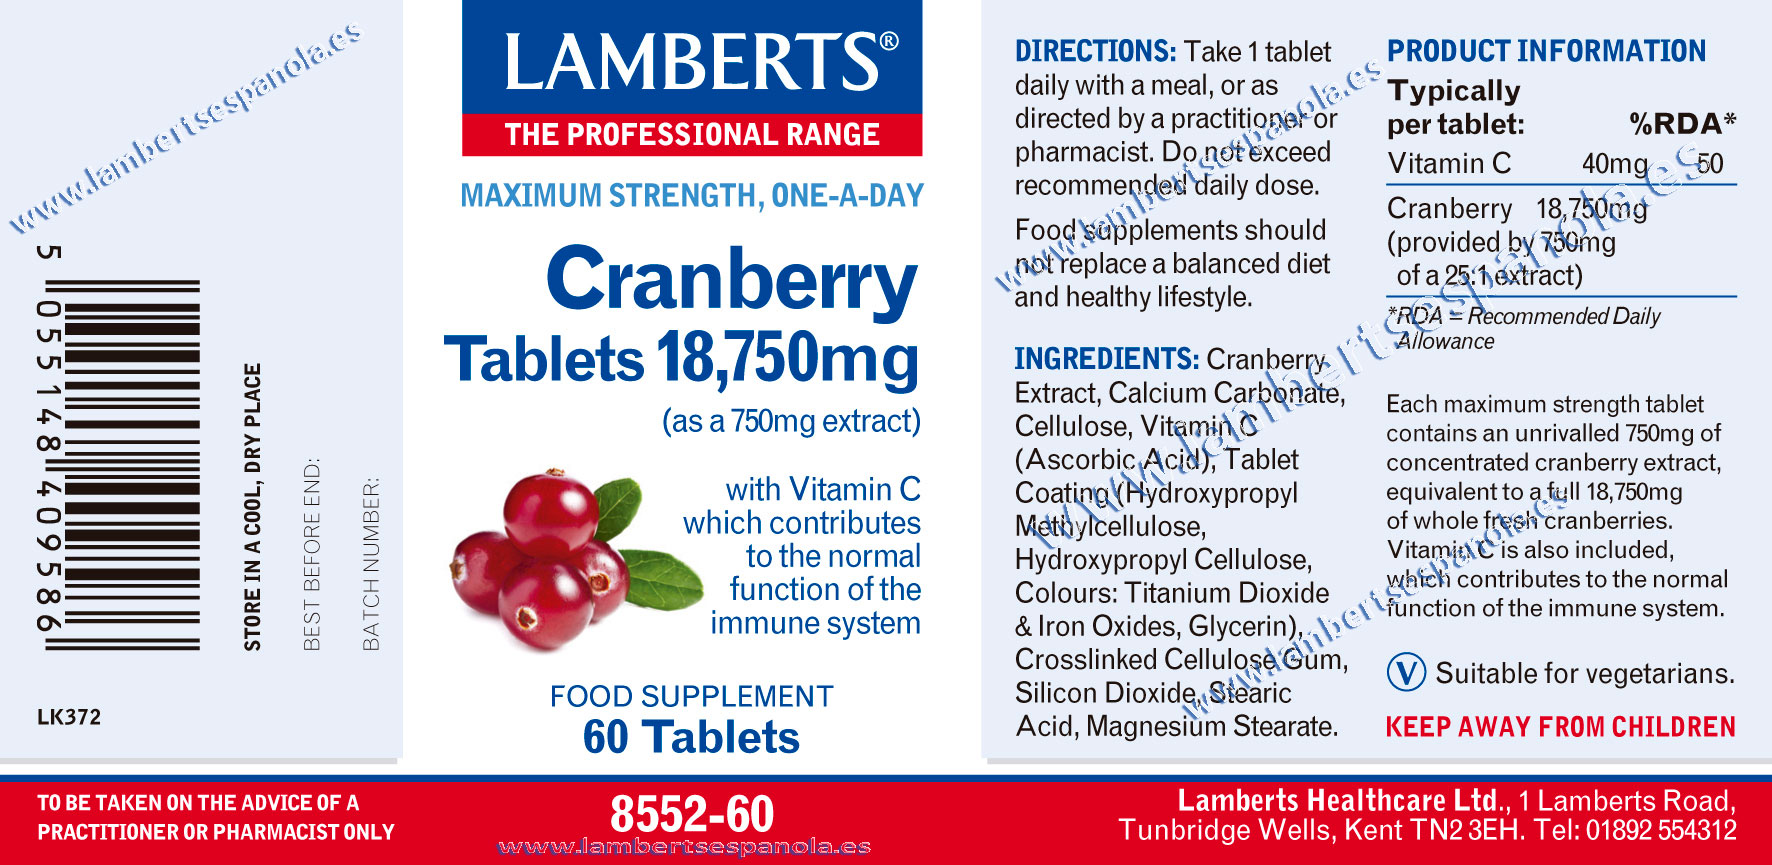 Red Cramberry complex properties. Lamberts